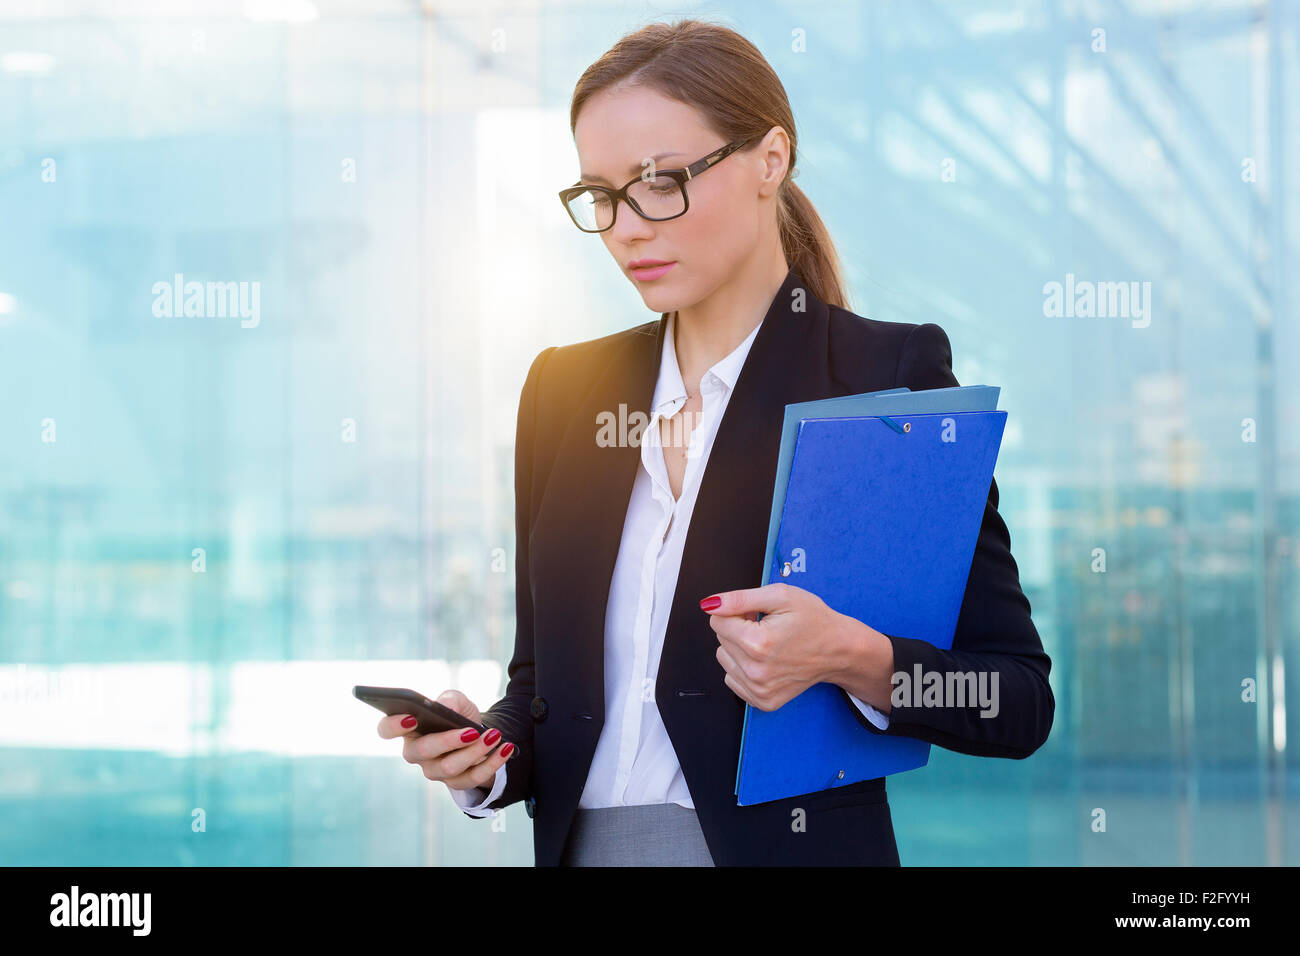 Businesswoman using a smart phone - Stock Image